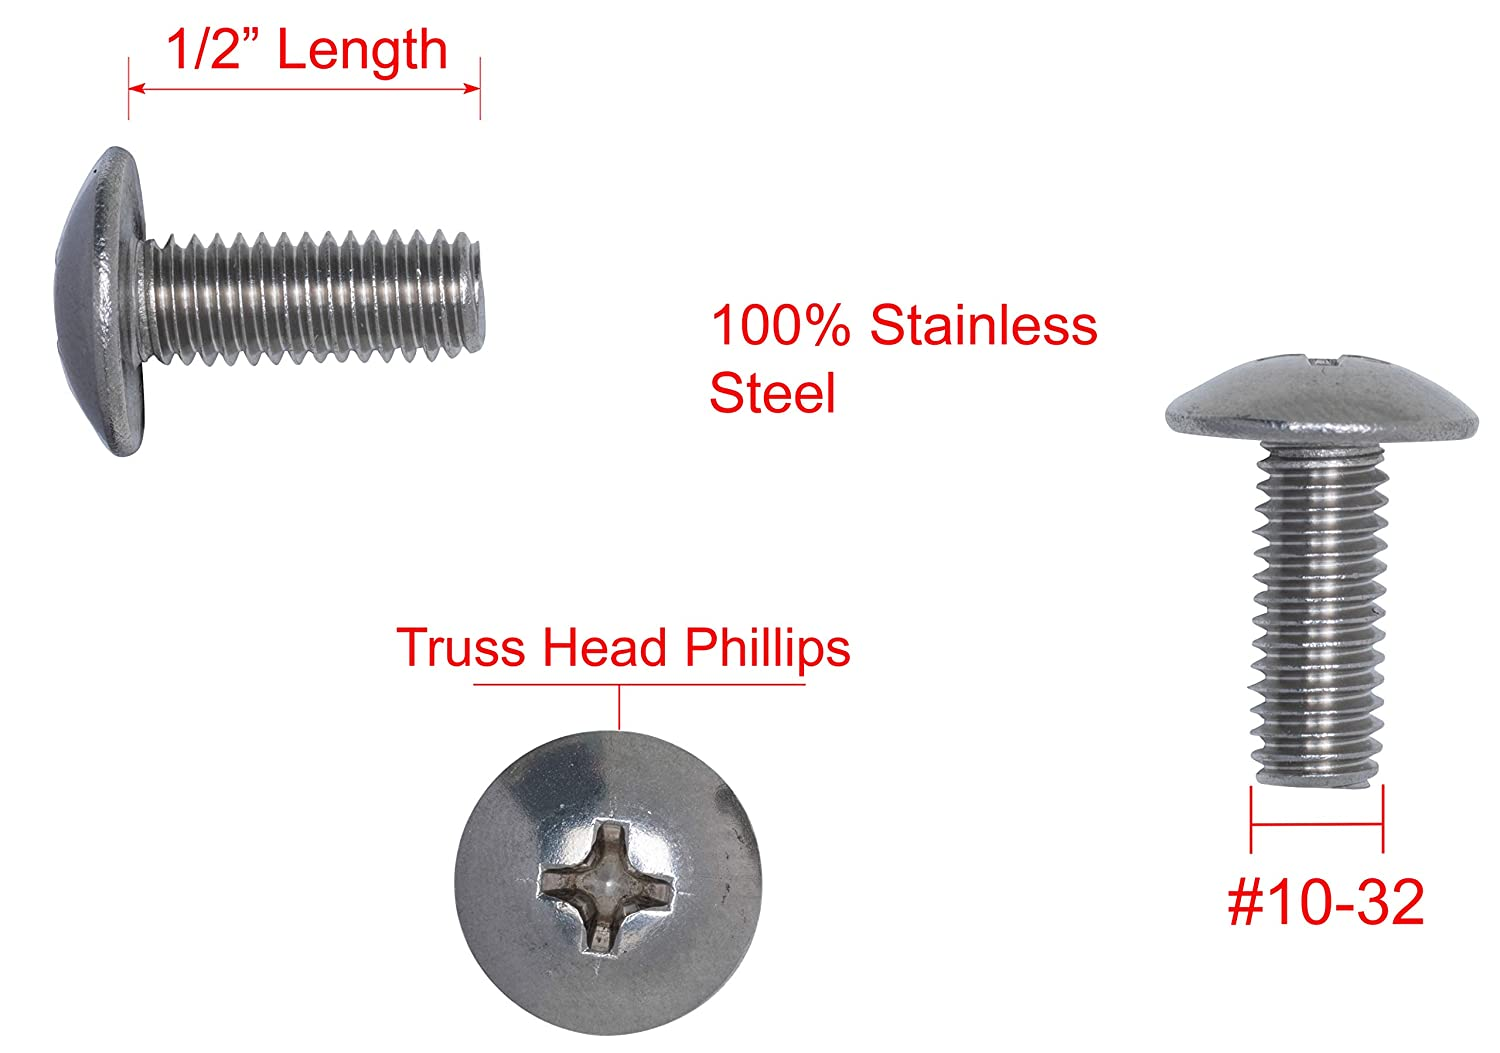 25pc #10-32 X 1-1//4 Stainless Phillips Truss Head Machine Screw, by Bolt Dropper Stainless Steel 304 Fine Thread 18-8